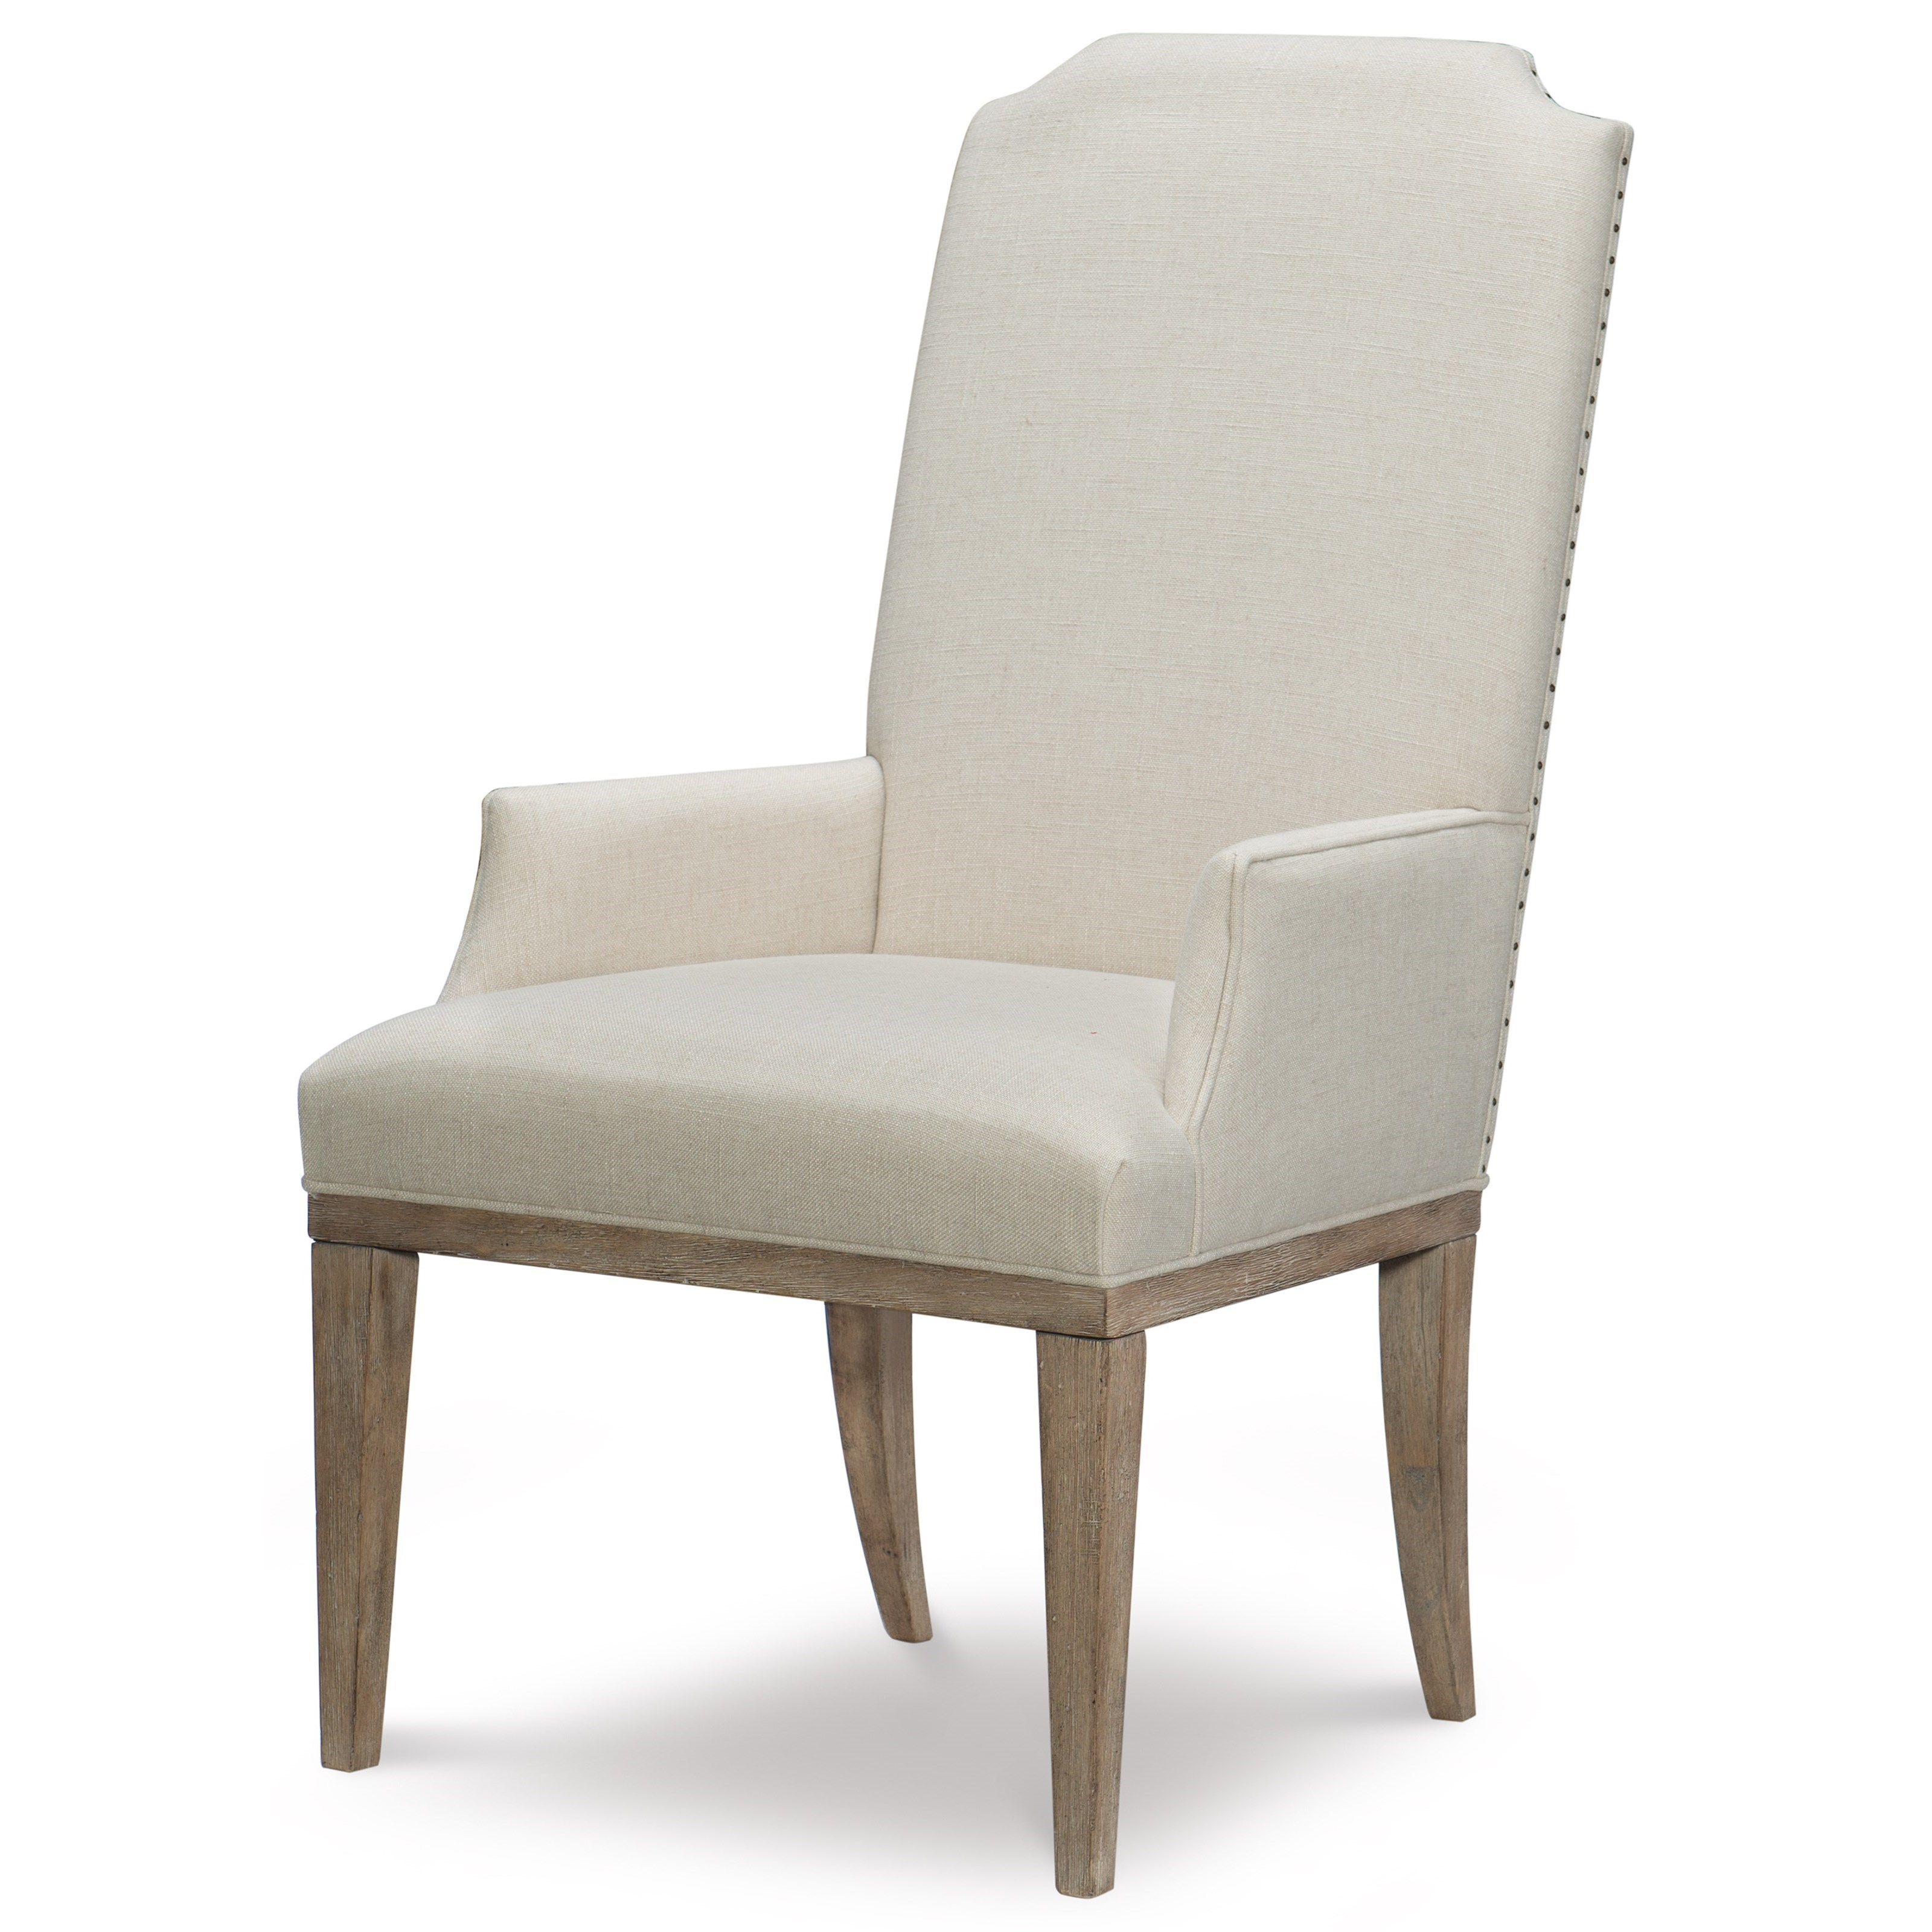 Monteverdi  Upholstered Host Arm Chair by Rachael Ray Home by Legacy Classic at Fashion Furniture